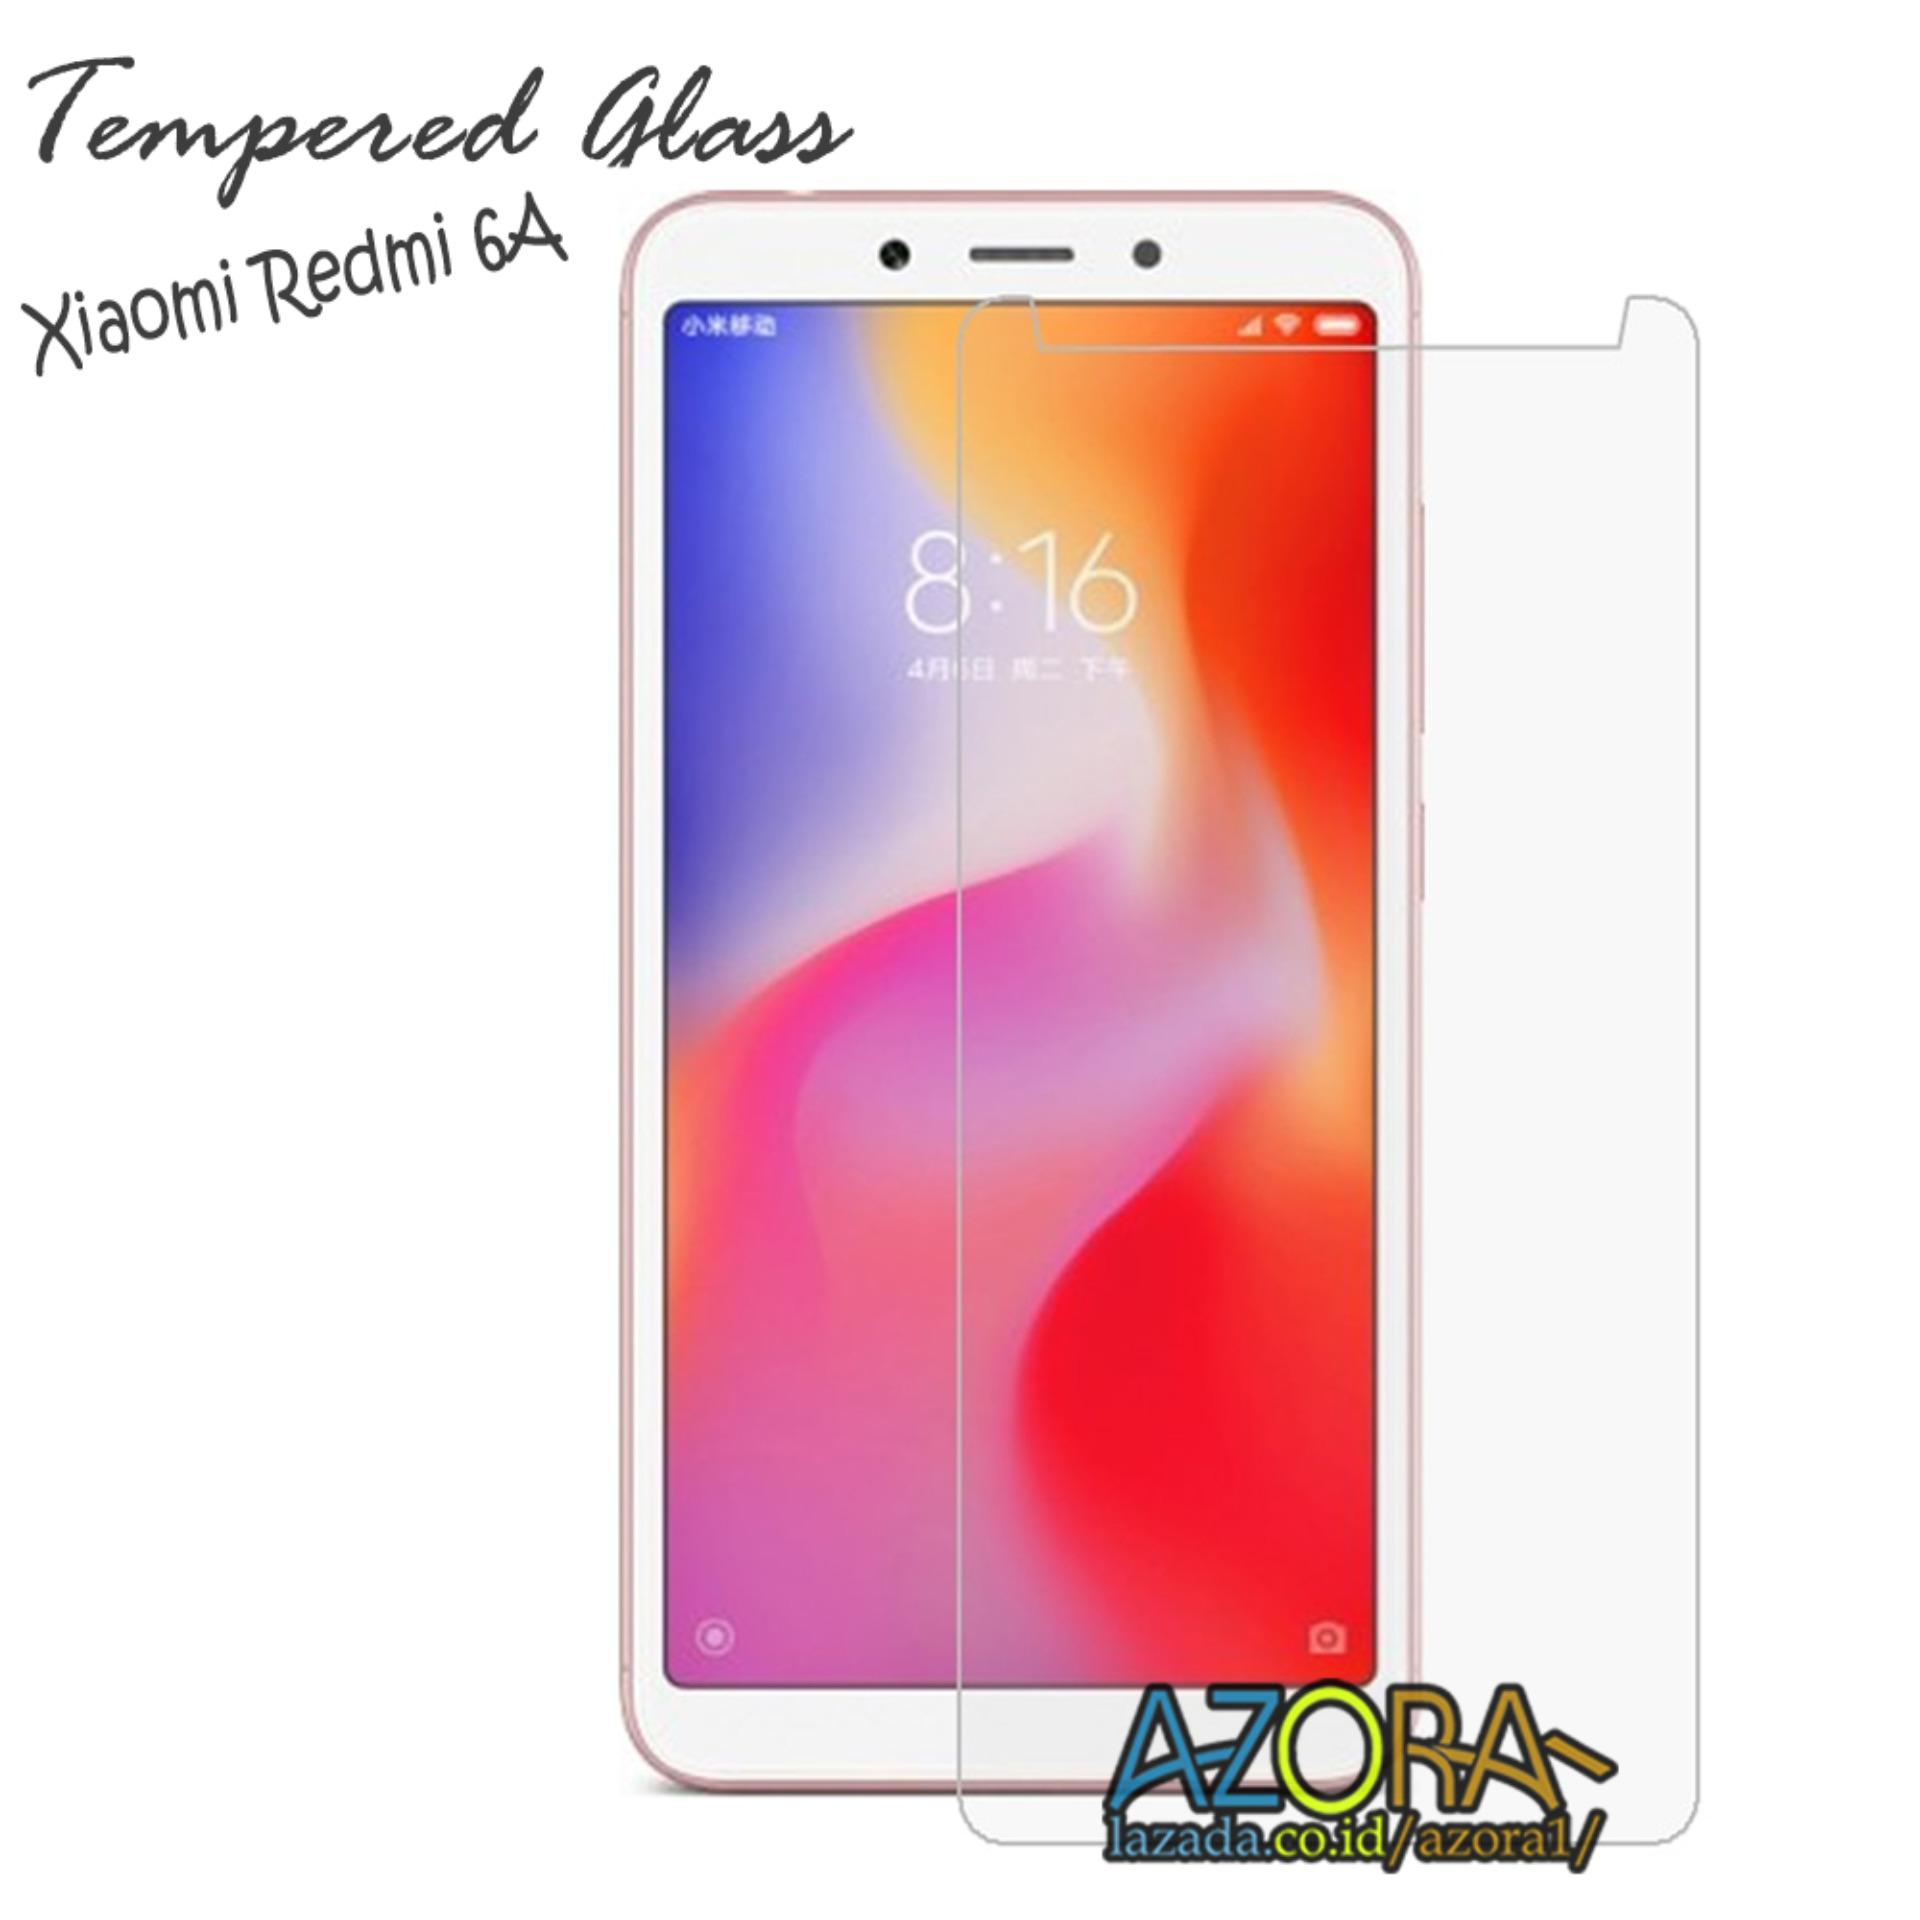 Tempered Glass Xiaomi Redmi 6A Screen Protector Pelindung Layar Kaca Anti Gores - Bening